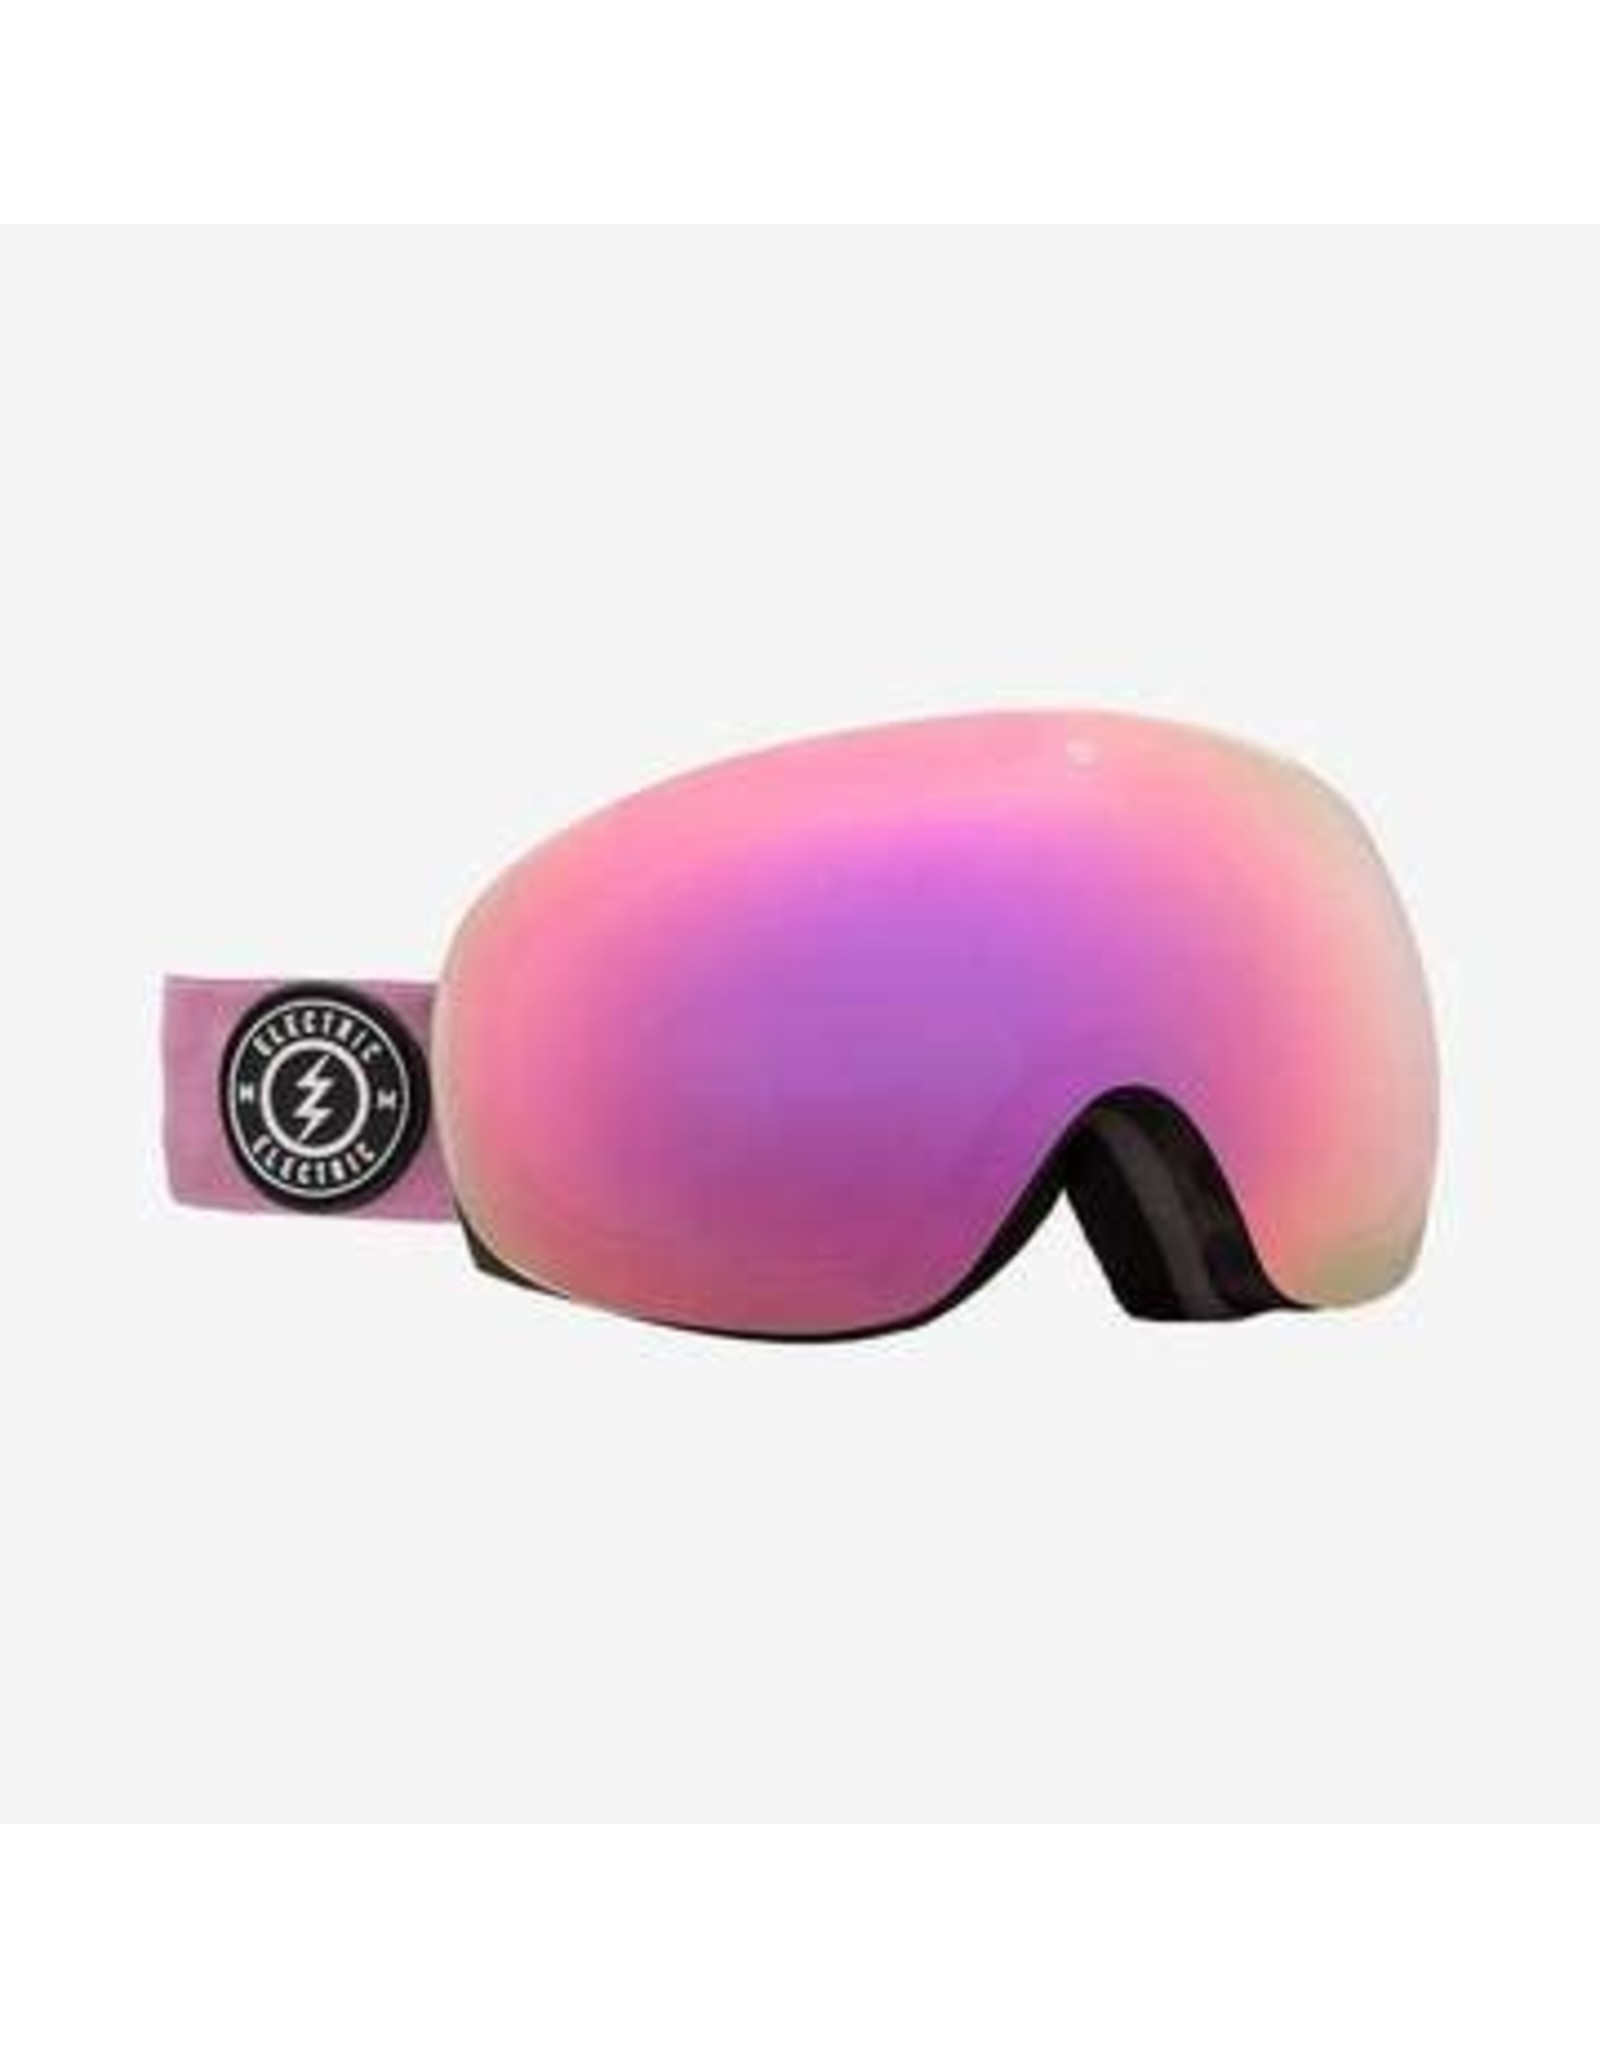 electric Electric - lunette snowboard EG3.5 tort mauve brose/pink chrome